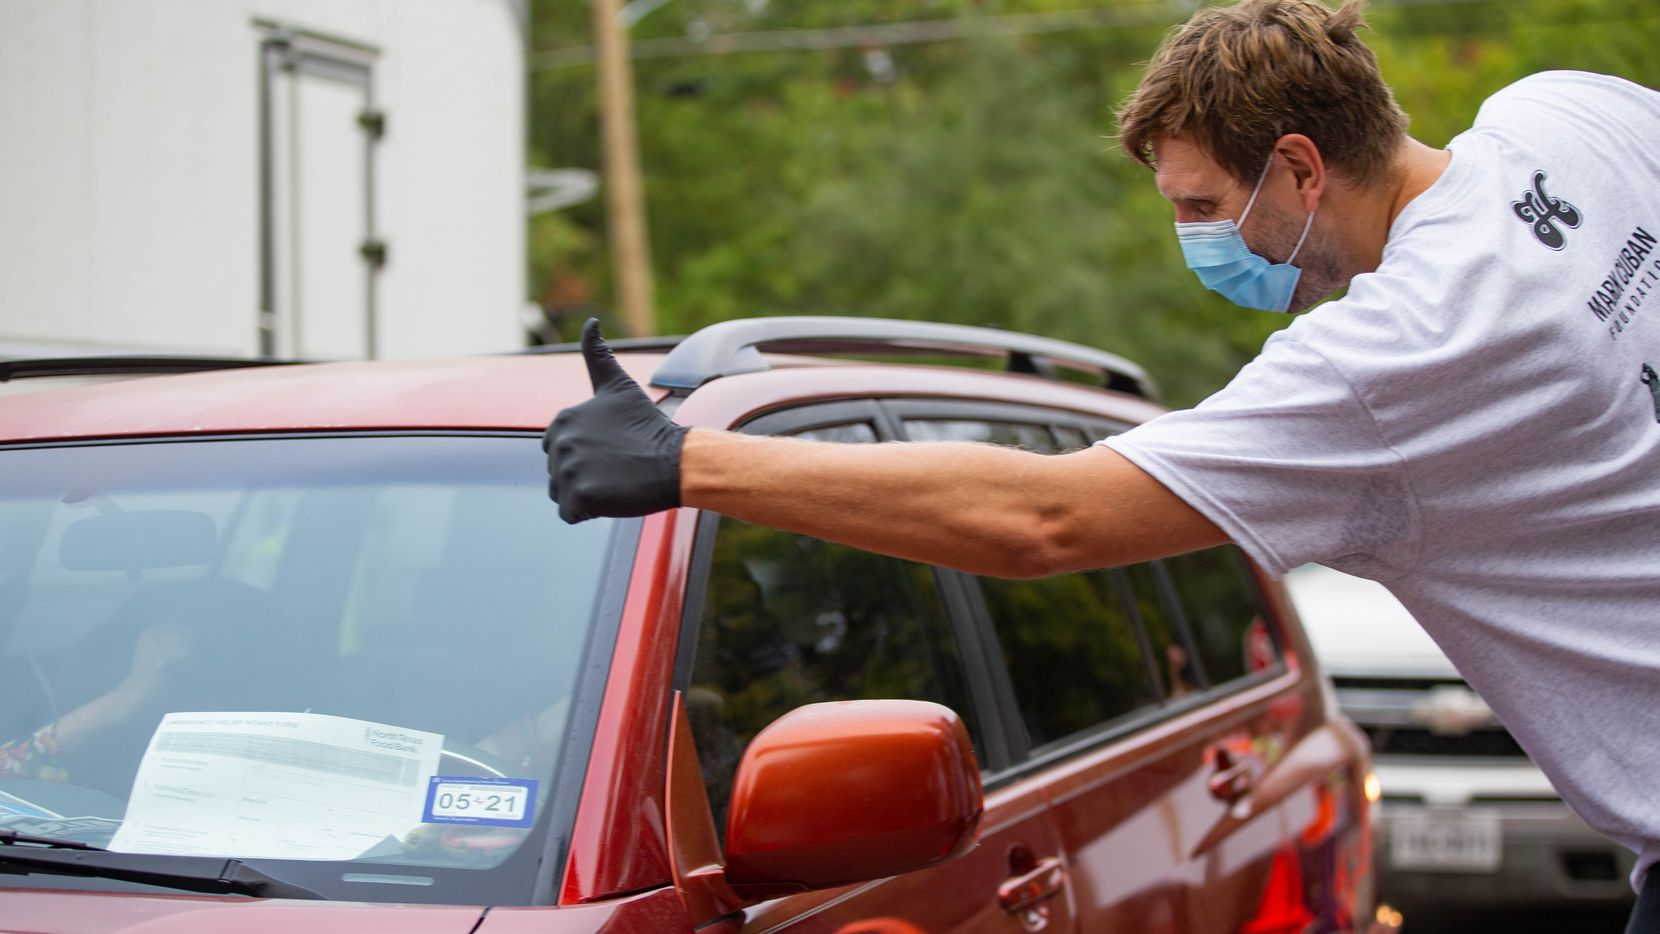 Former Dallas Mavericks player Dirk Nowitzki gives a driver a thumbs up before loading their car with food during the Center Table Fall Harvest food drive at the Mark Cuban Center in Dallas on Thursday, Oct. 22, 2020.